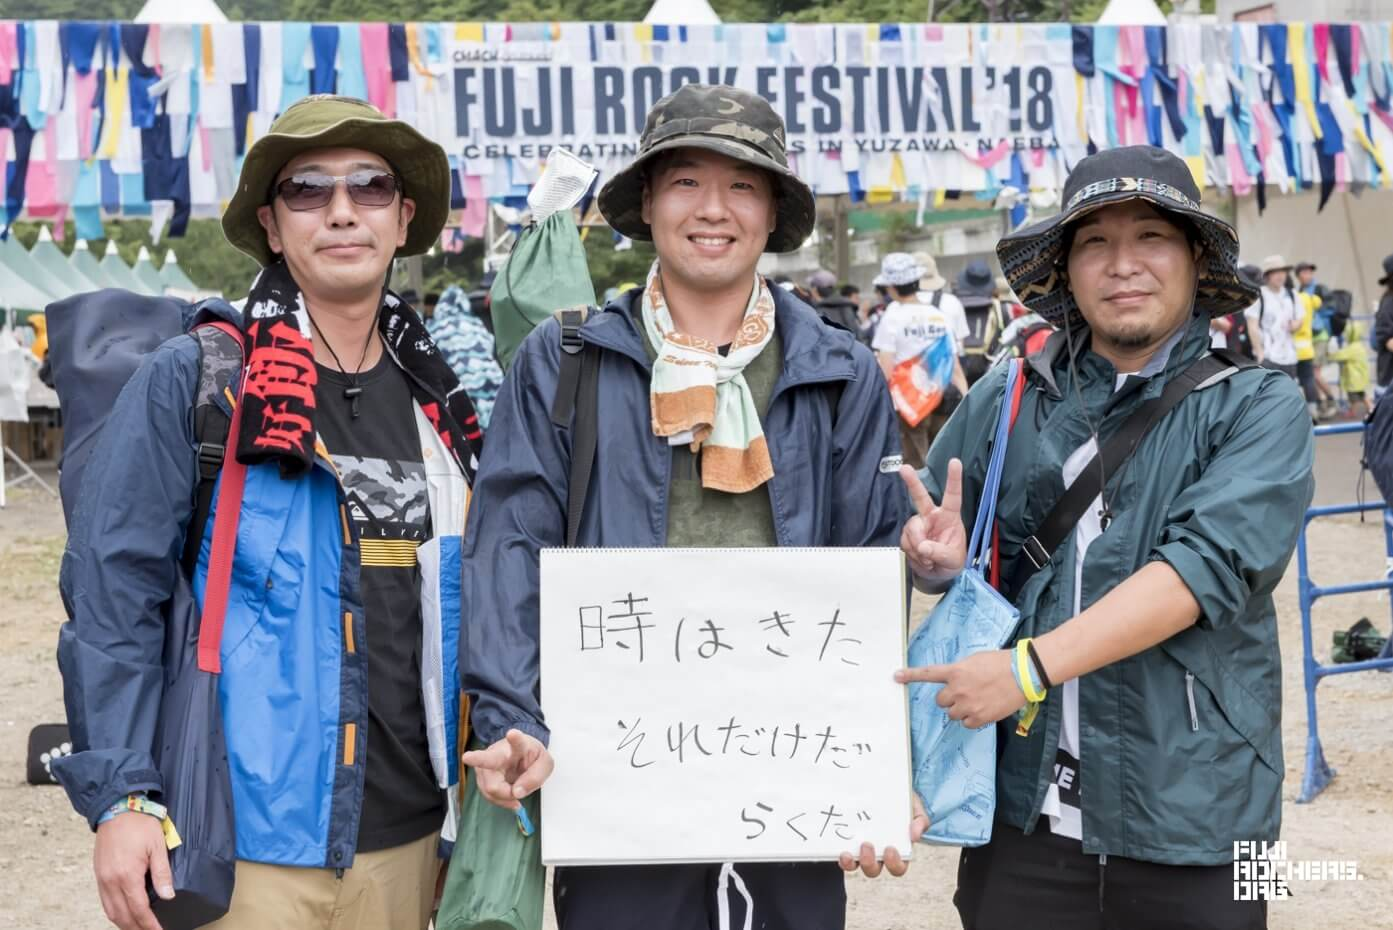 Message for Fujirock! 2018 #072